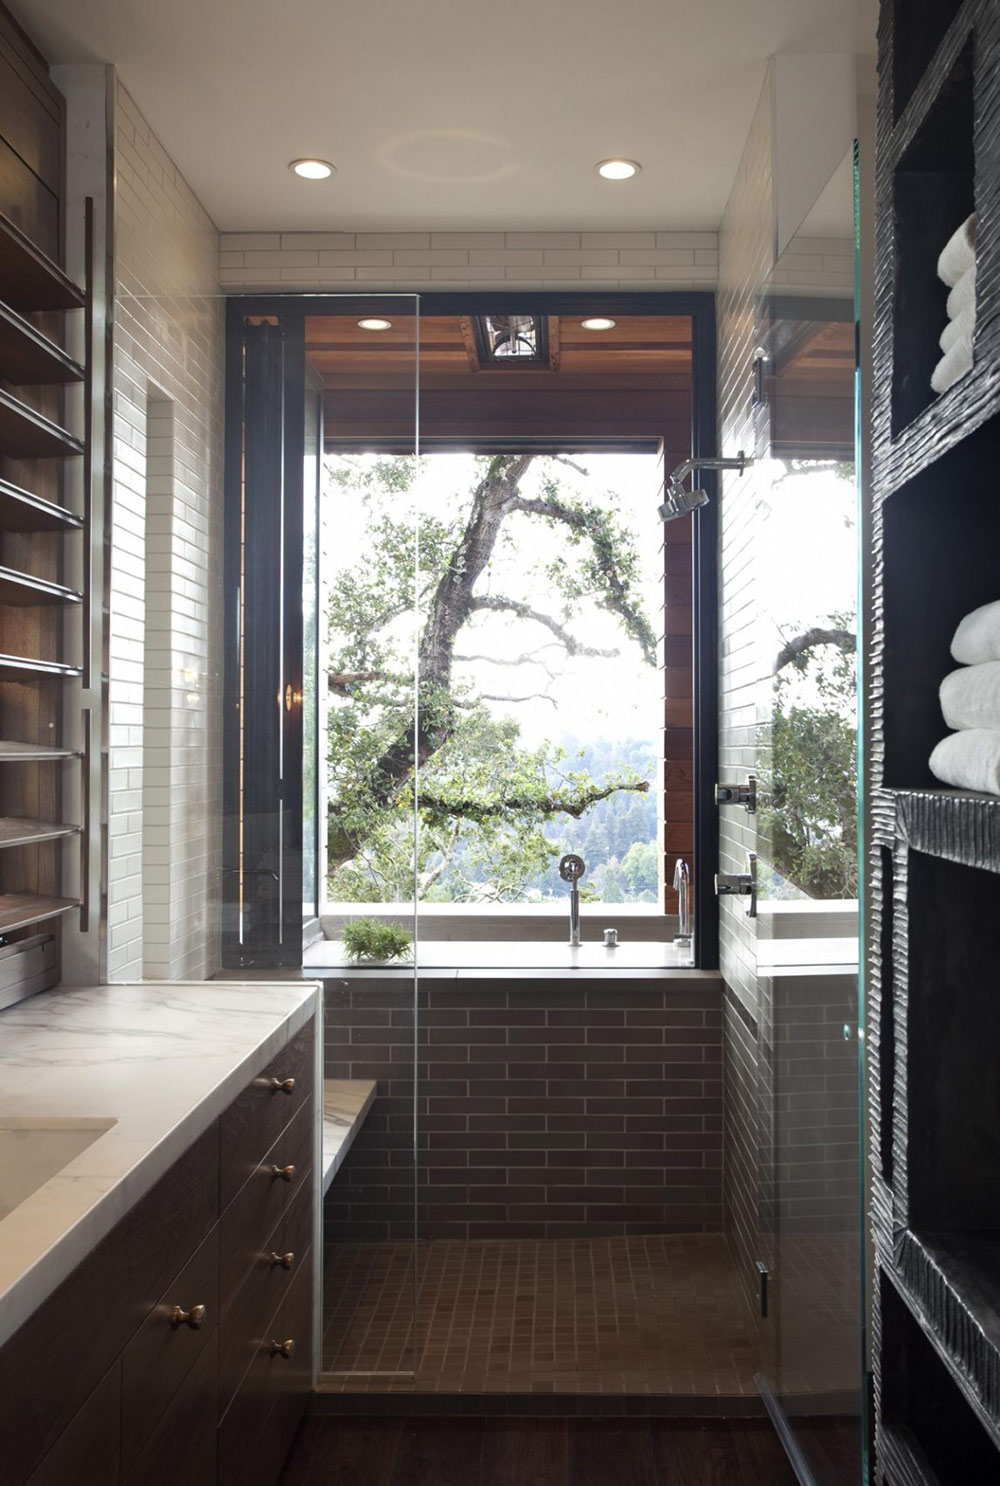 Bathroom, Shower, Hillside House, California by SB Architects